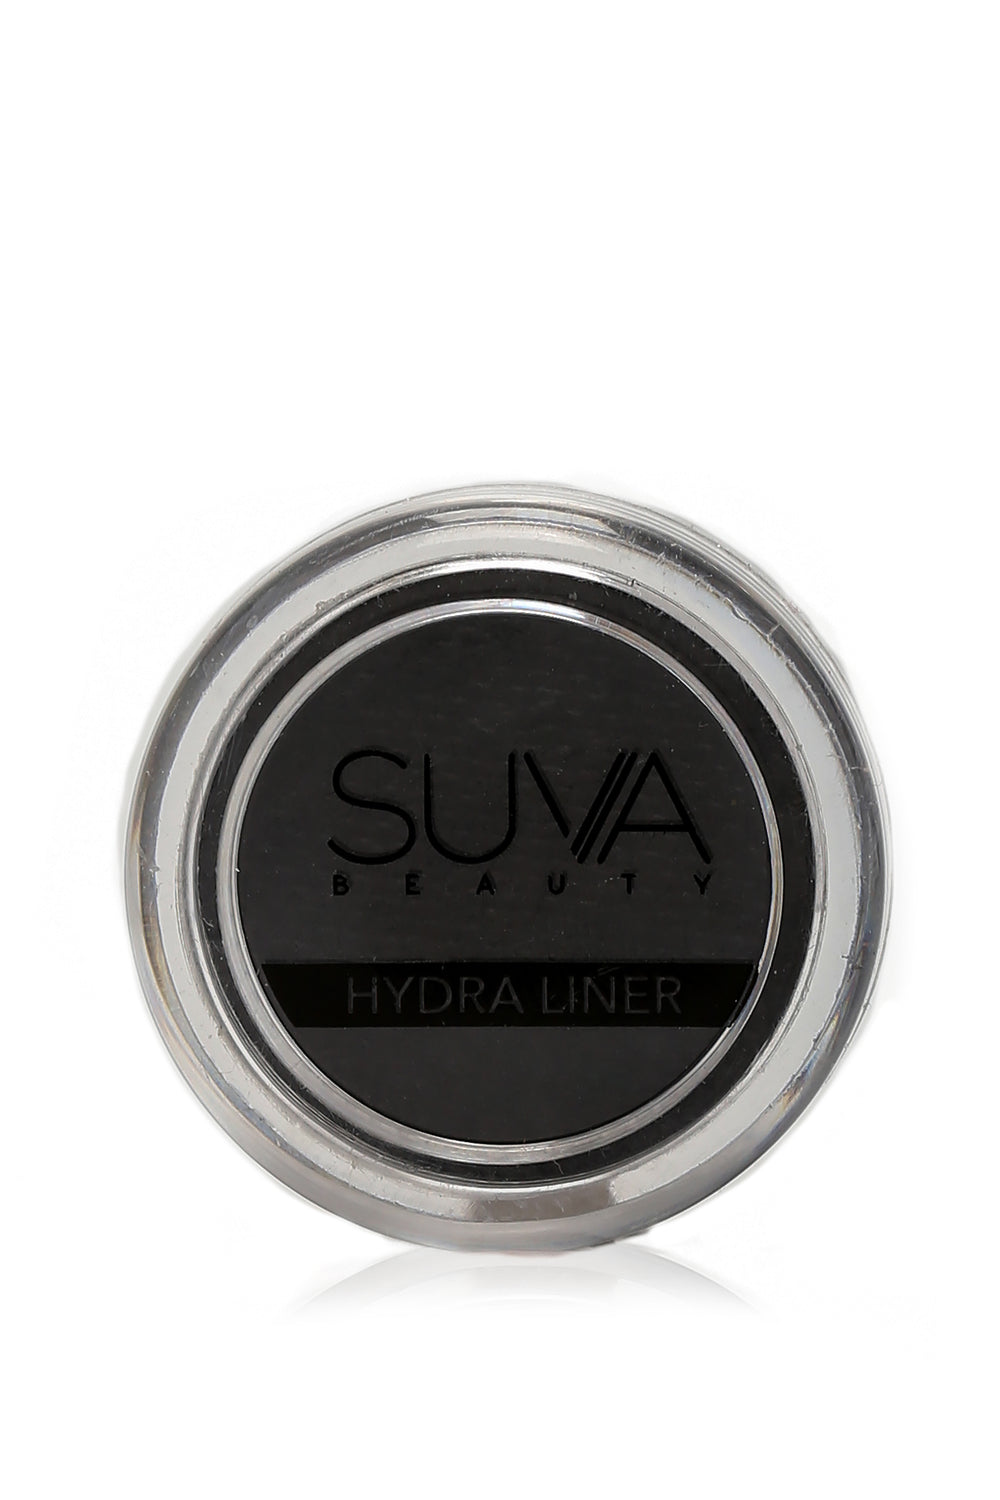 Suva Beauty Hydra Liner - Grease